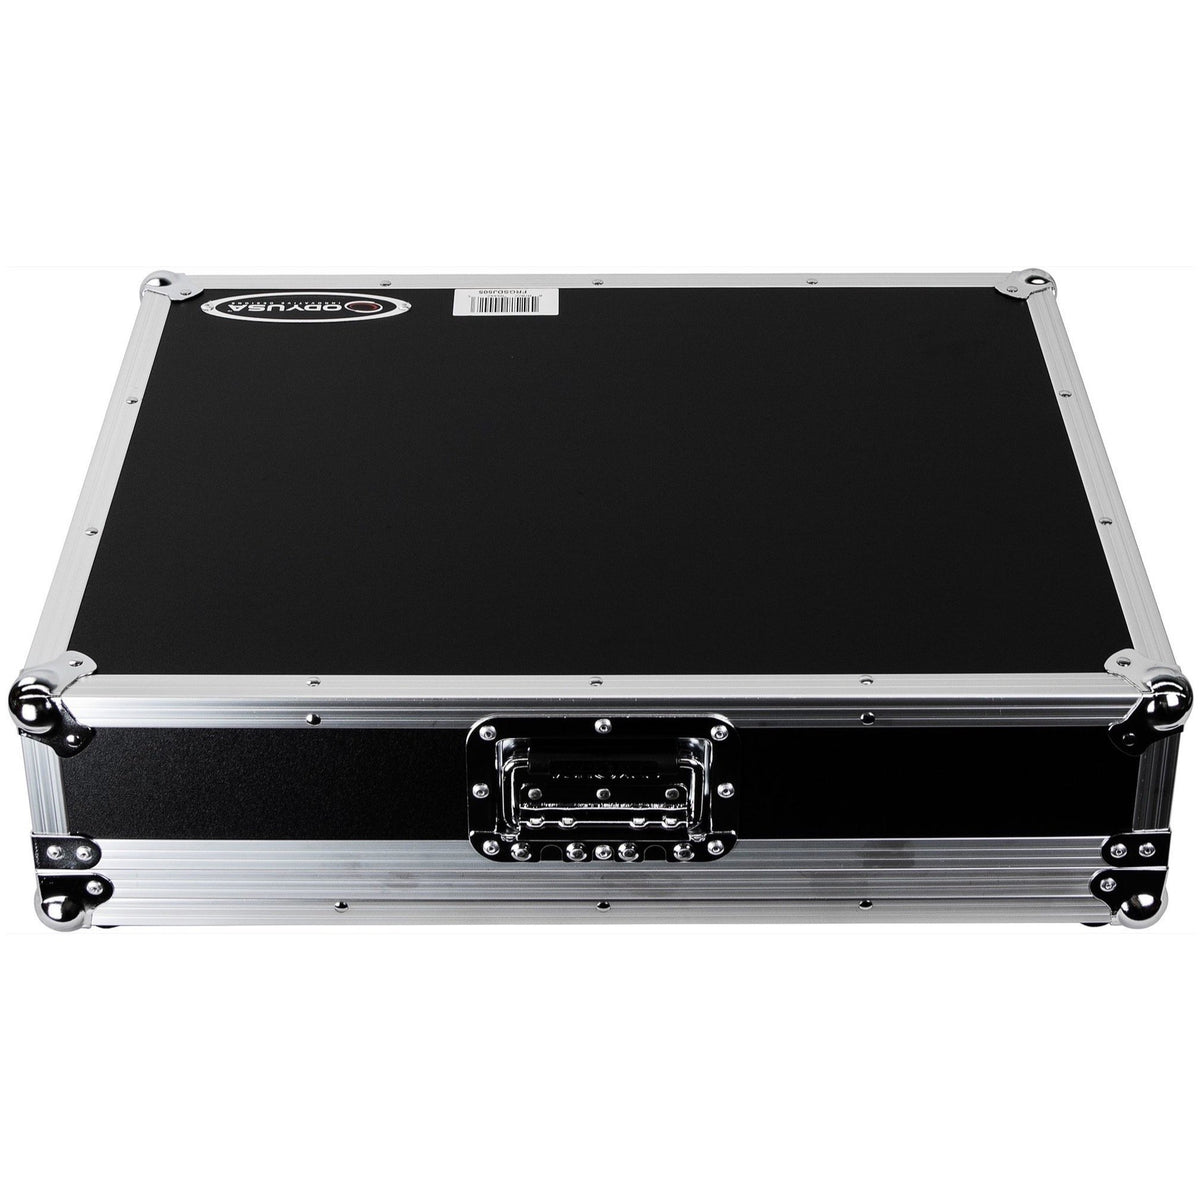 Odyssey FRGSDJ505 Case for Roland DJ-505